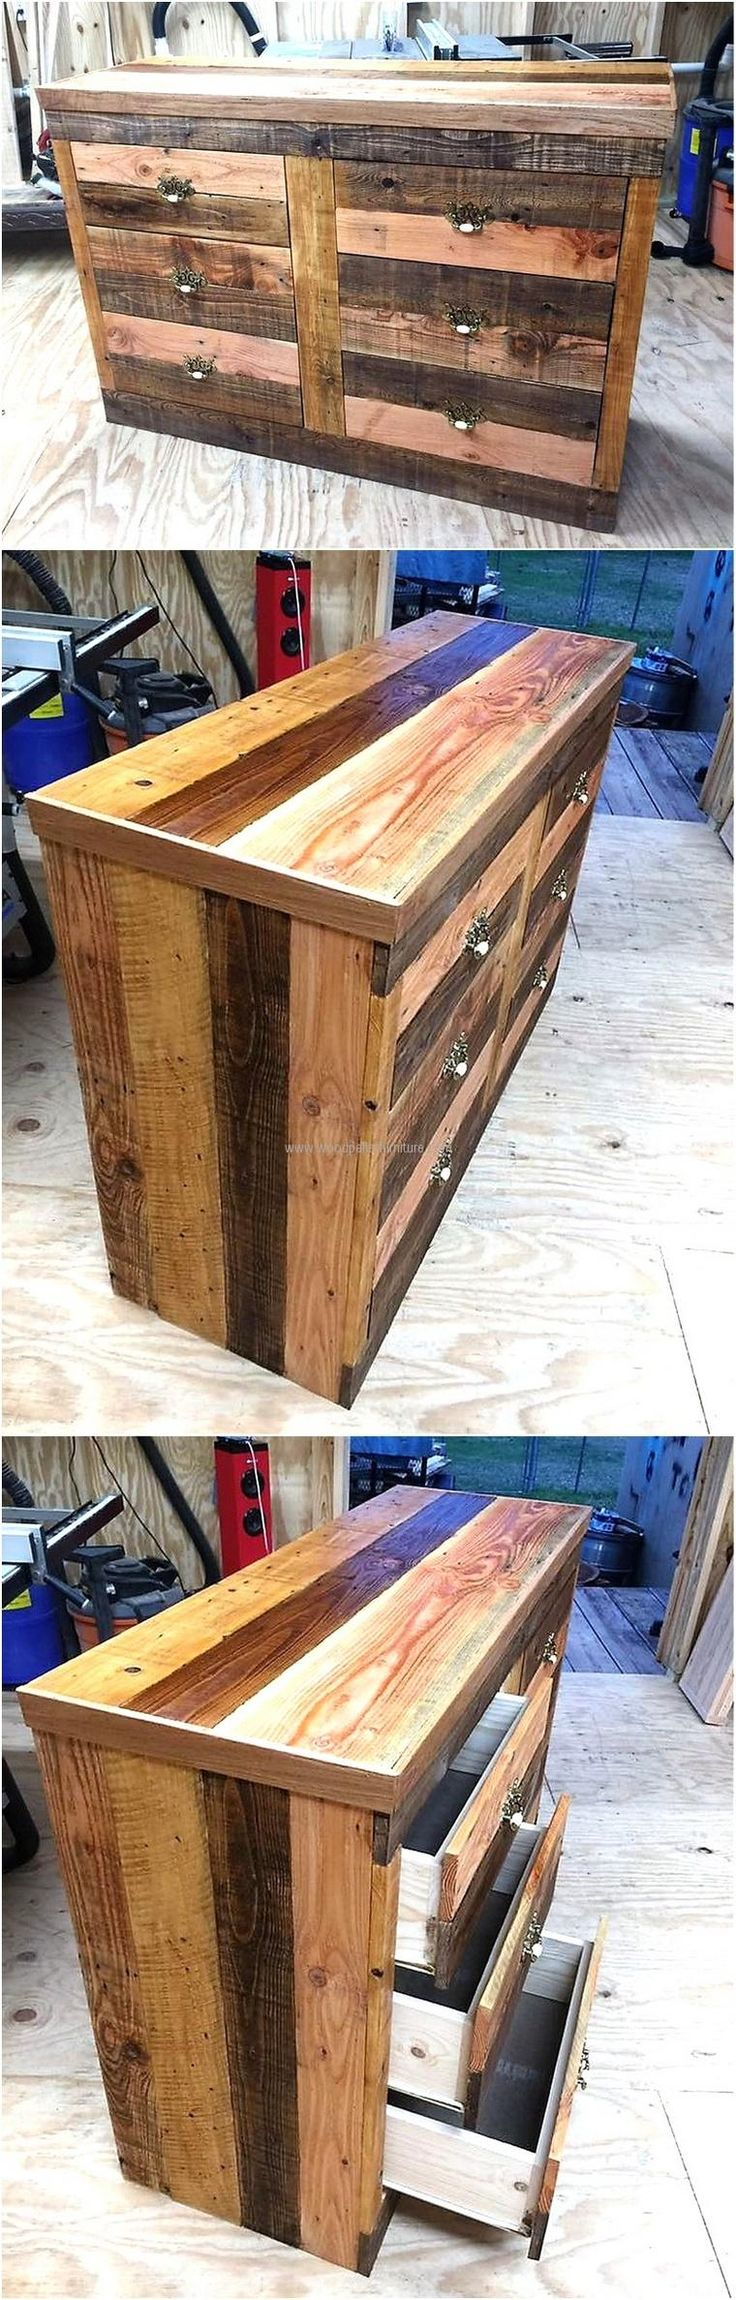 Dressers are available in the furniture store at high rate, but a bedroom is incomplete without it. It is not difficult to create a dresser at home and here is the idea to create a 6 drawer dresser which will make the room look great as it gives good looks.